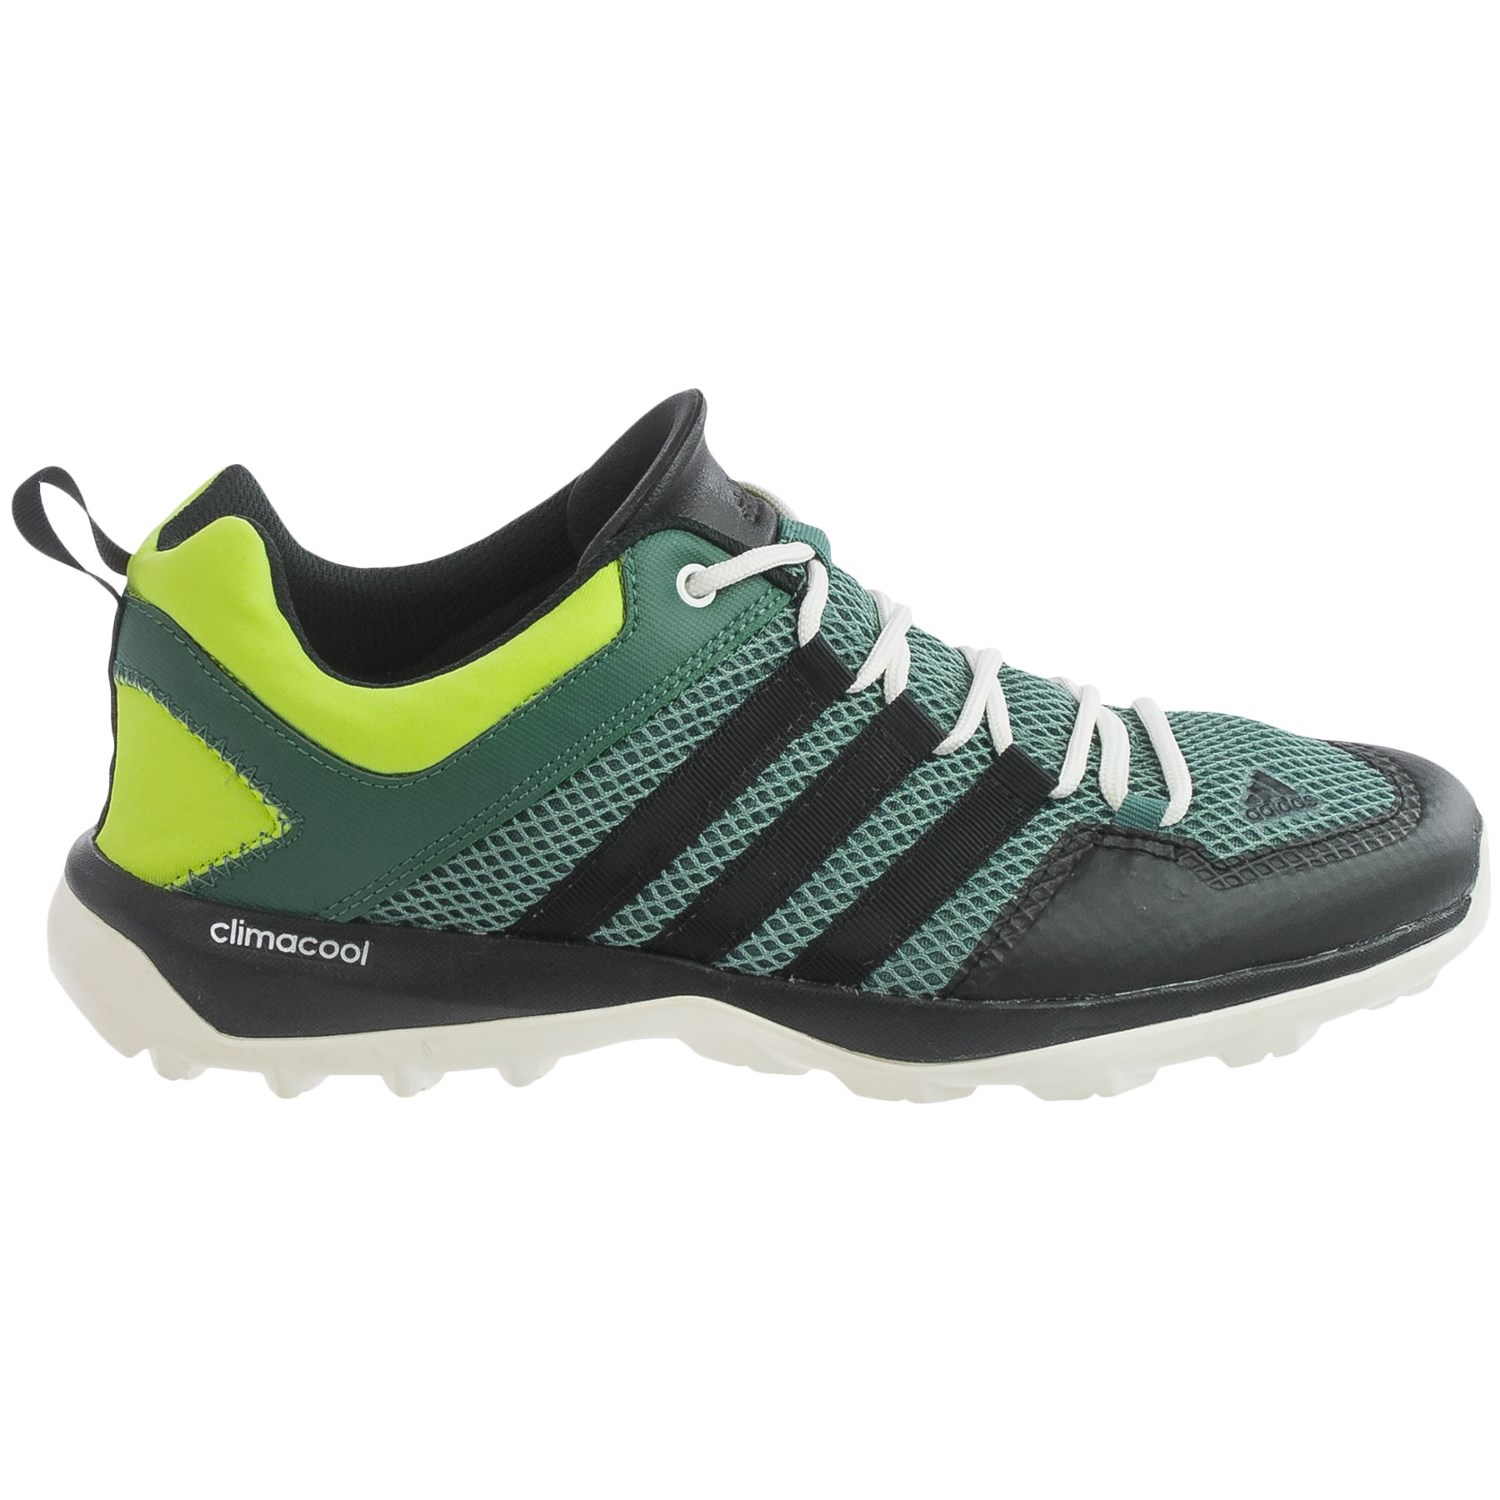 adidas climacool water shoes